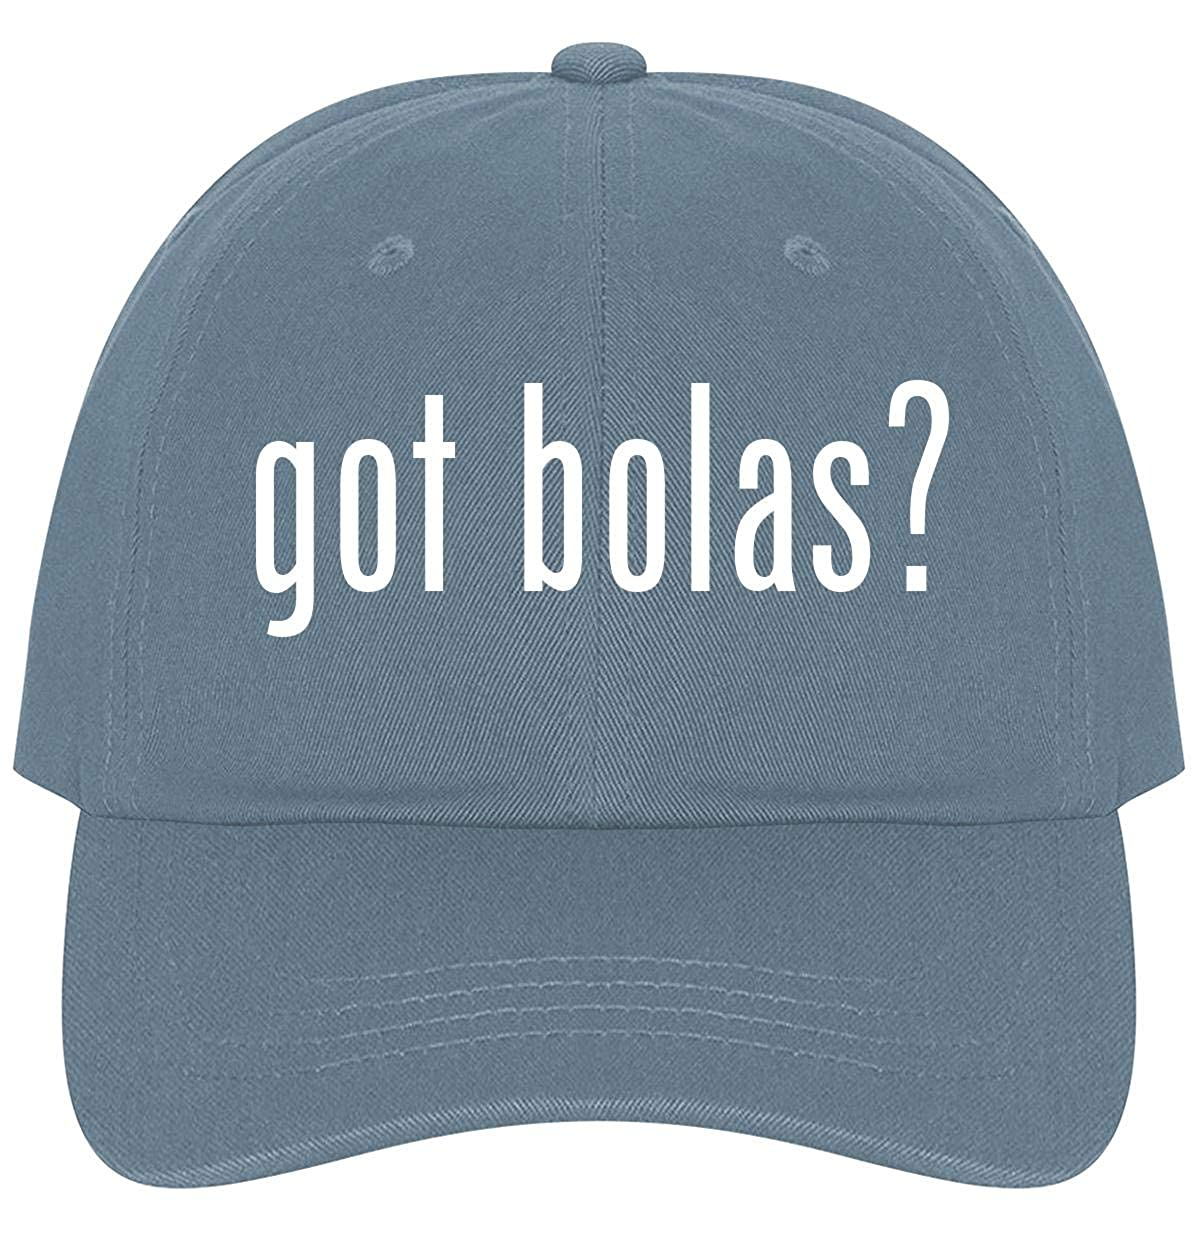 The Town Butler got Bolas? A Nice Comfortable Adjustable Dad Hat Cap